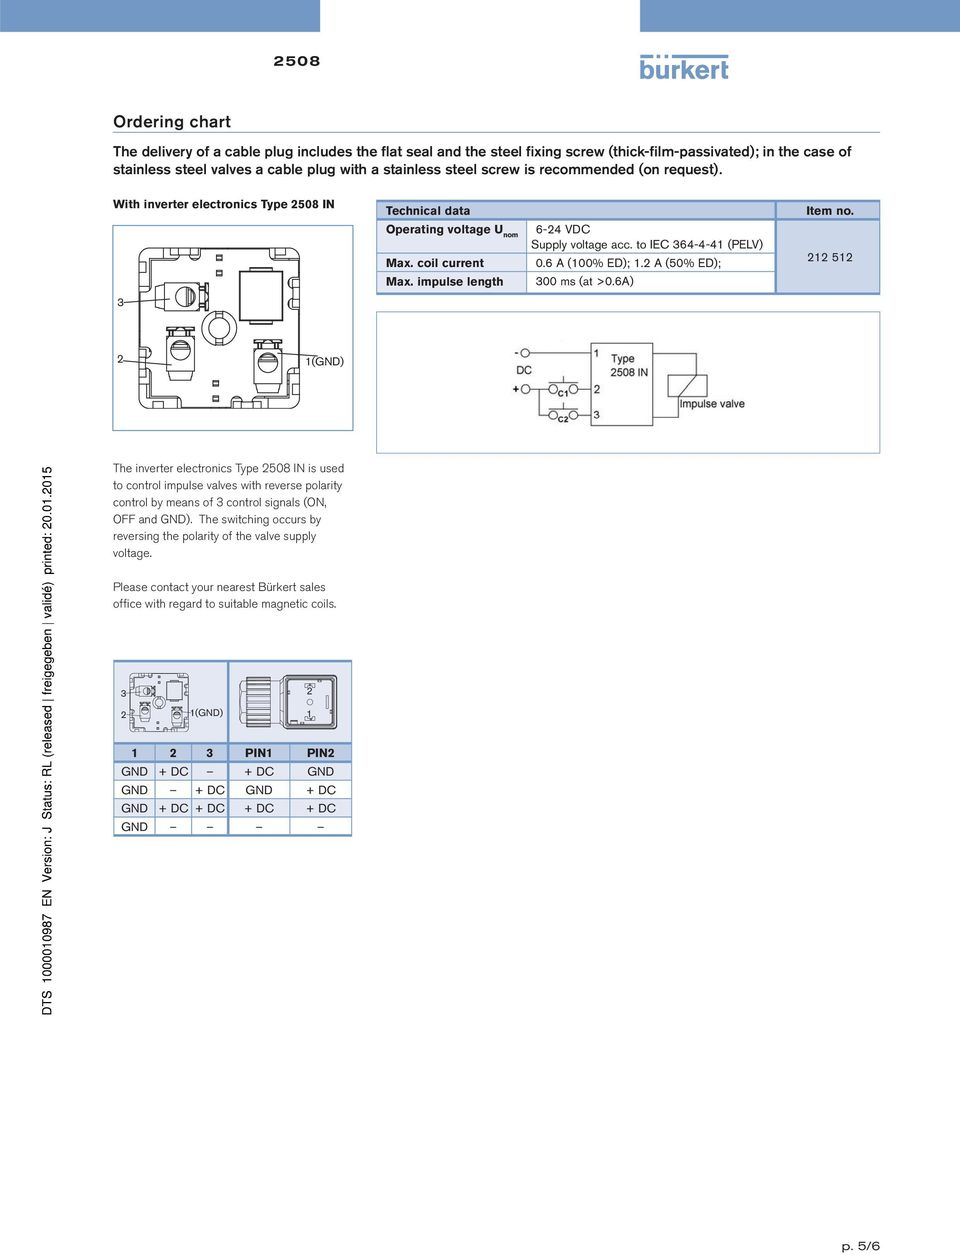 6A 212 512 The inverter electronics Type 2508 IN is used to control impulse valves with reverse polarity control by means of 3 control signals (ON, OFF and GND.